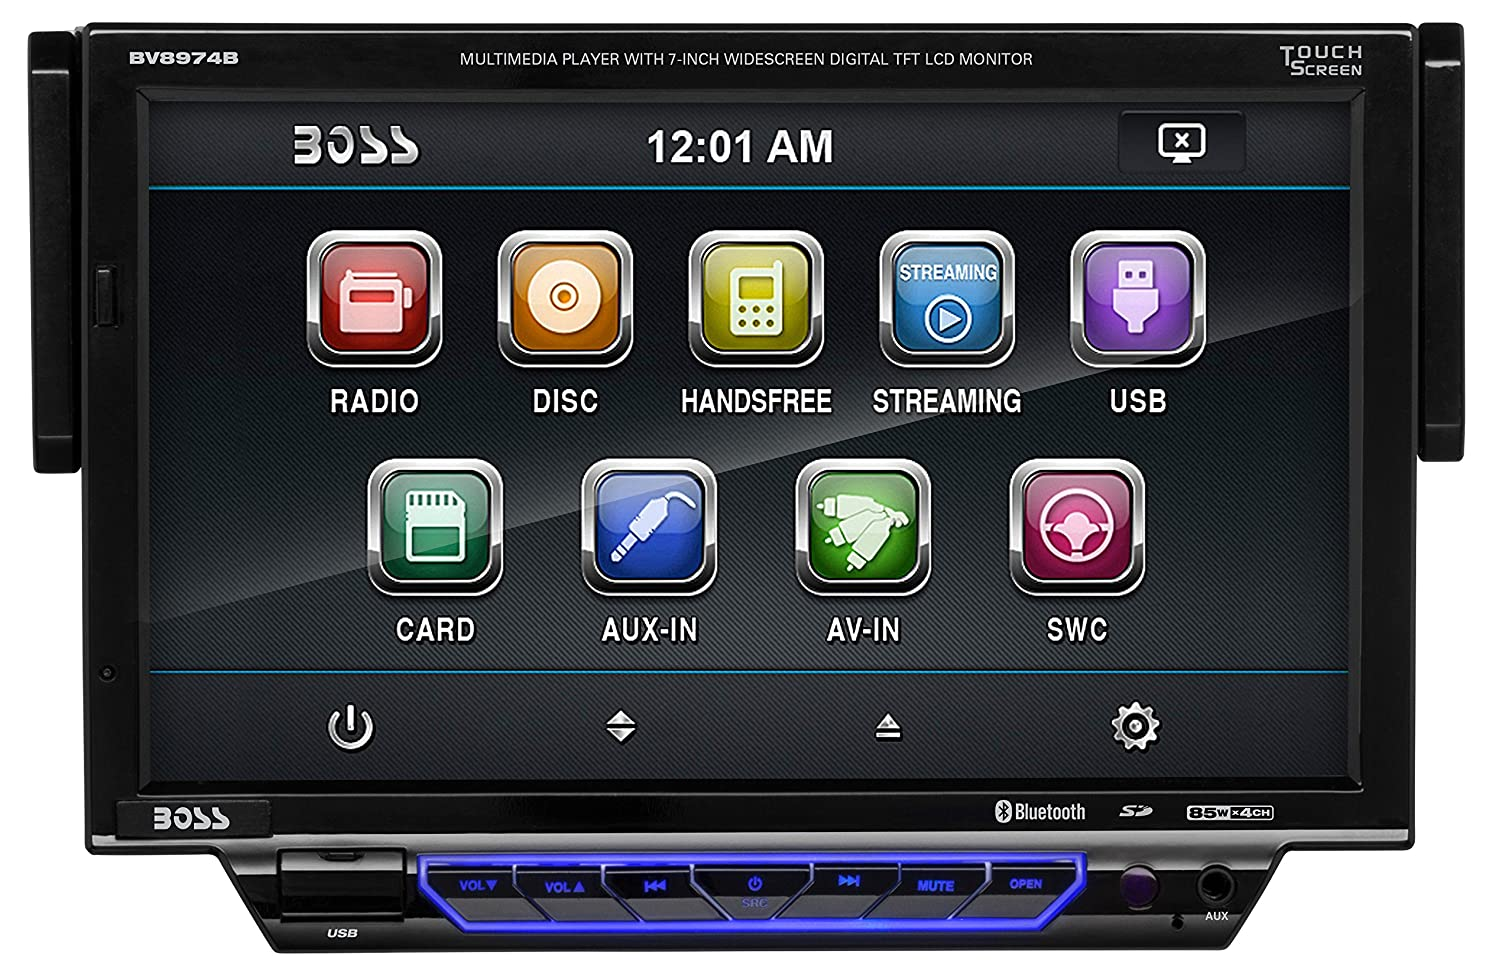 amazon com boss audio bv8974b single din, touchscreen, bluetoothboss audio bv8974b single din, touchscreen, bluetooth, dvd cd mp3 usb sd am fm car stereo, 7 inch digital lcd monitor, detachable front panel,